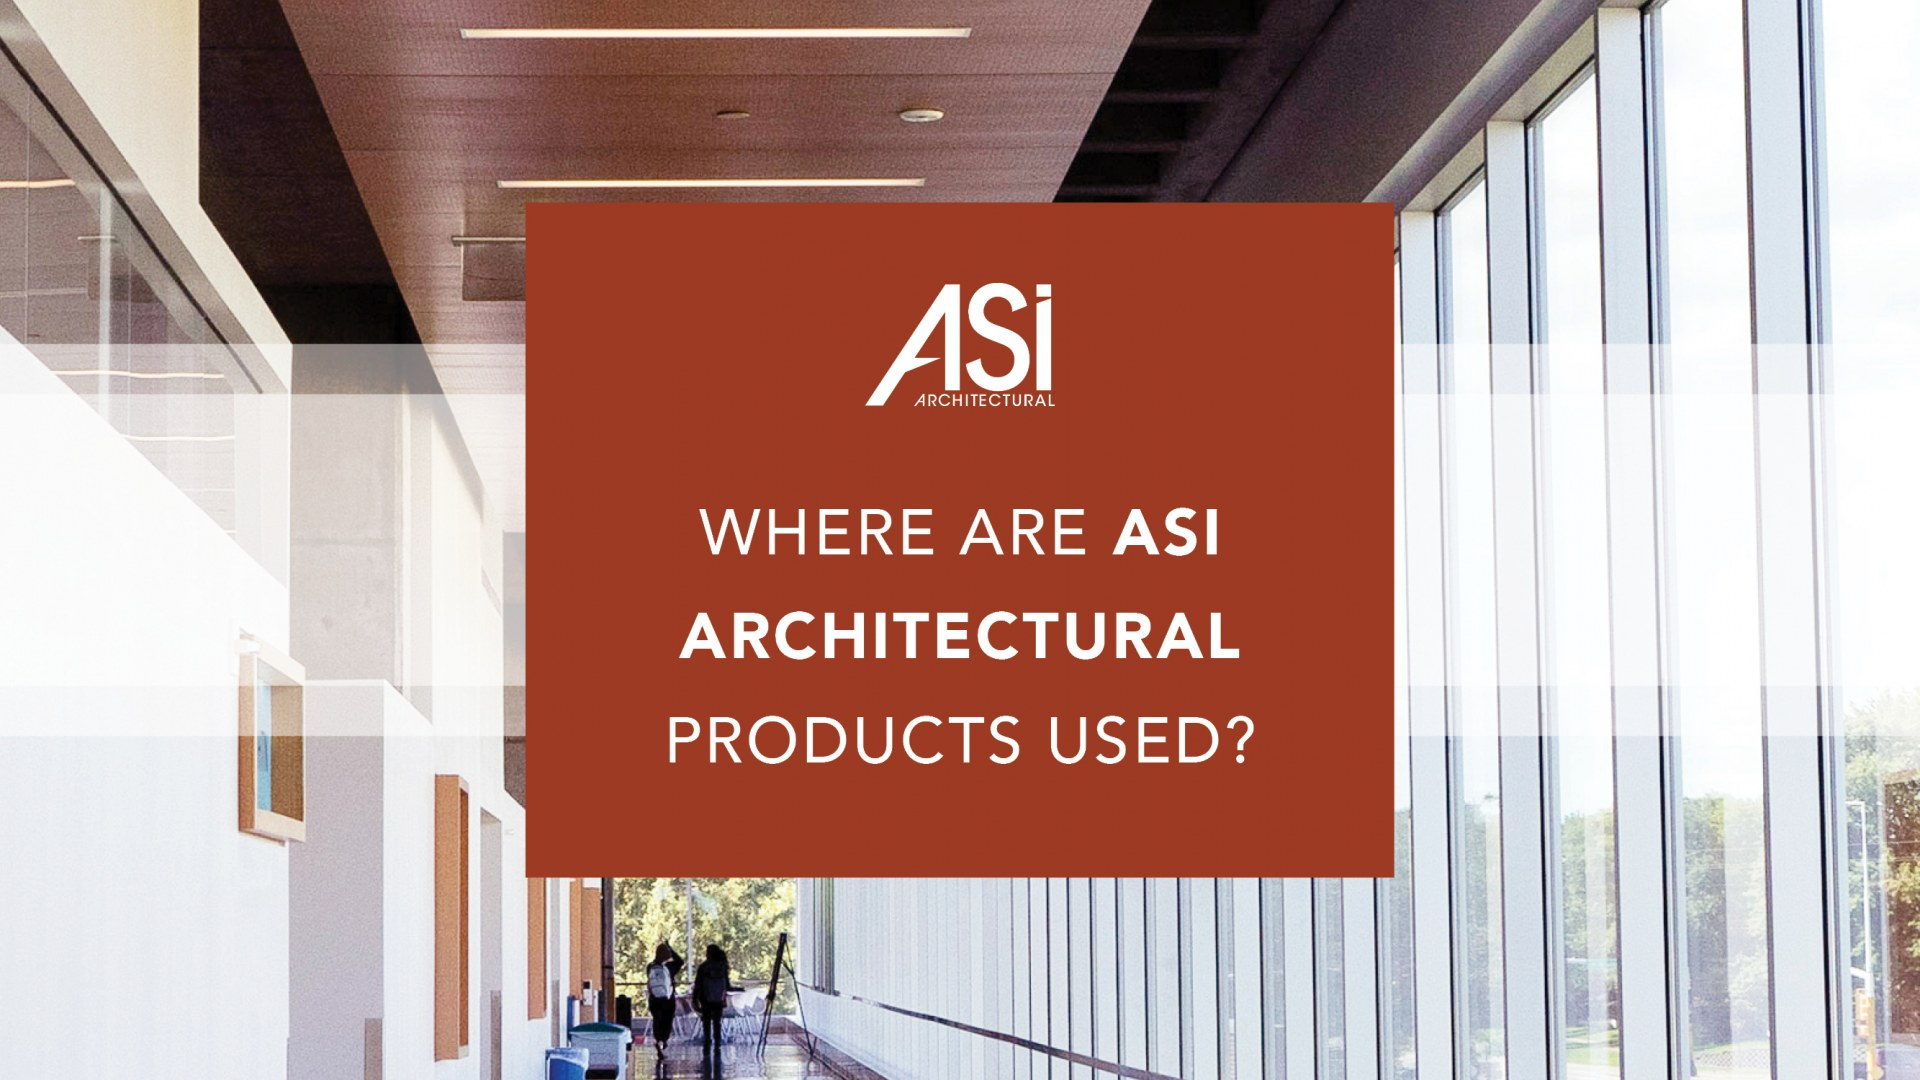 Where Are ASI Architectural Products Used? - ASI Architectural